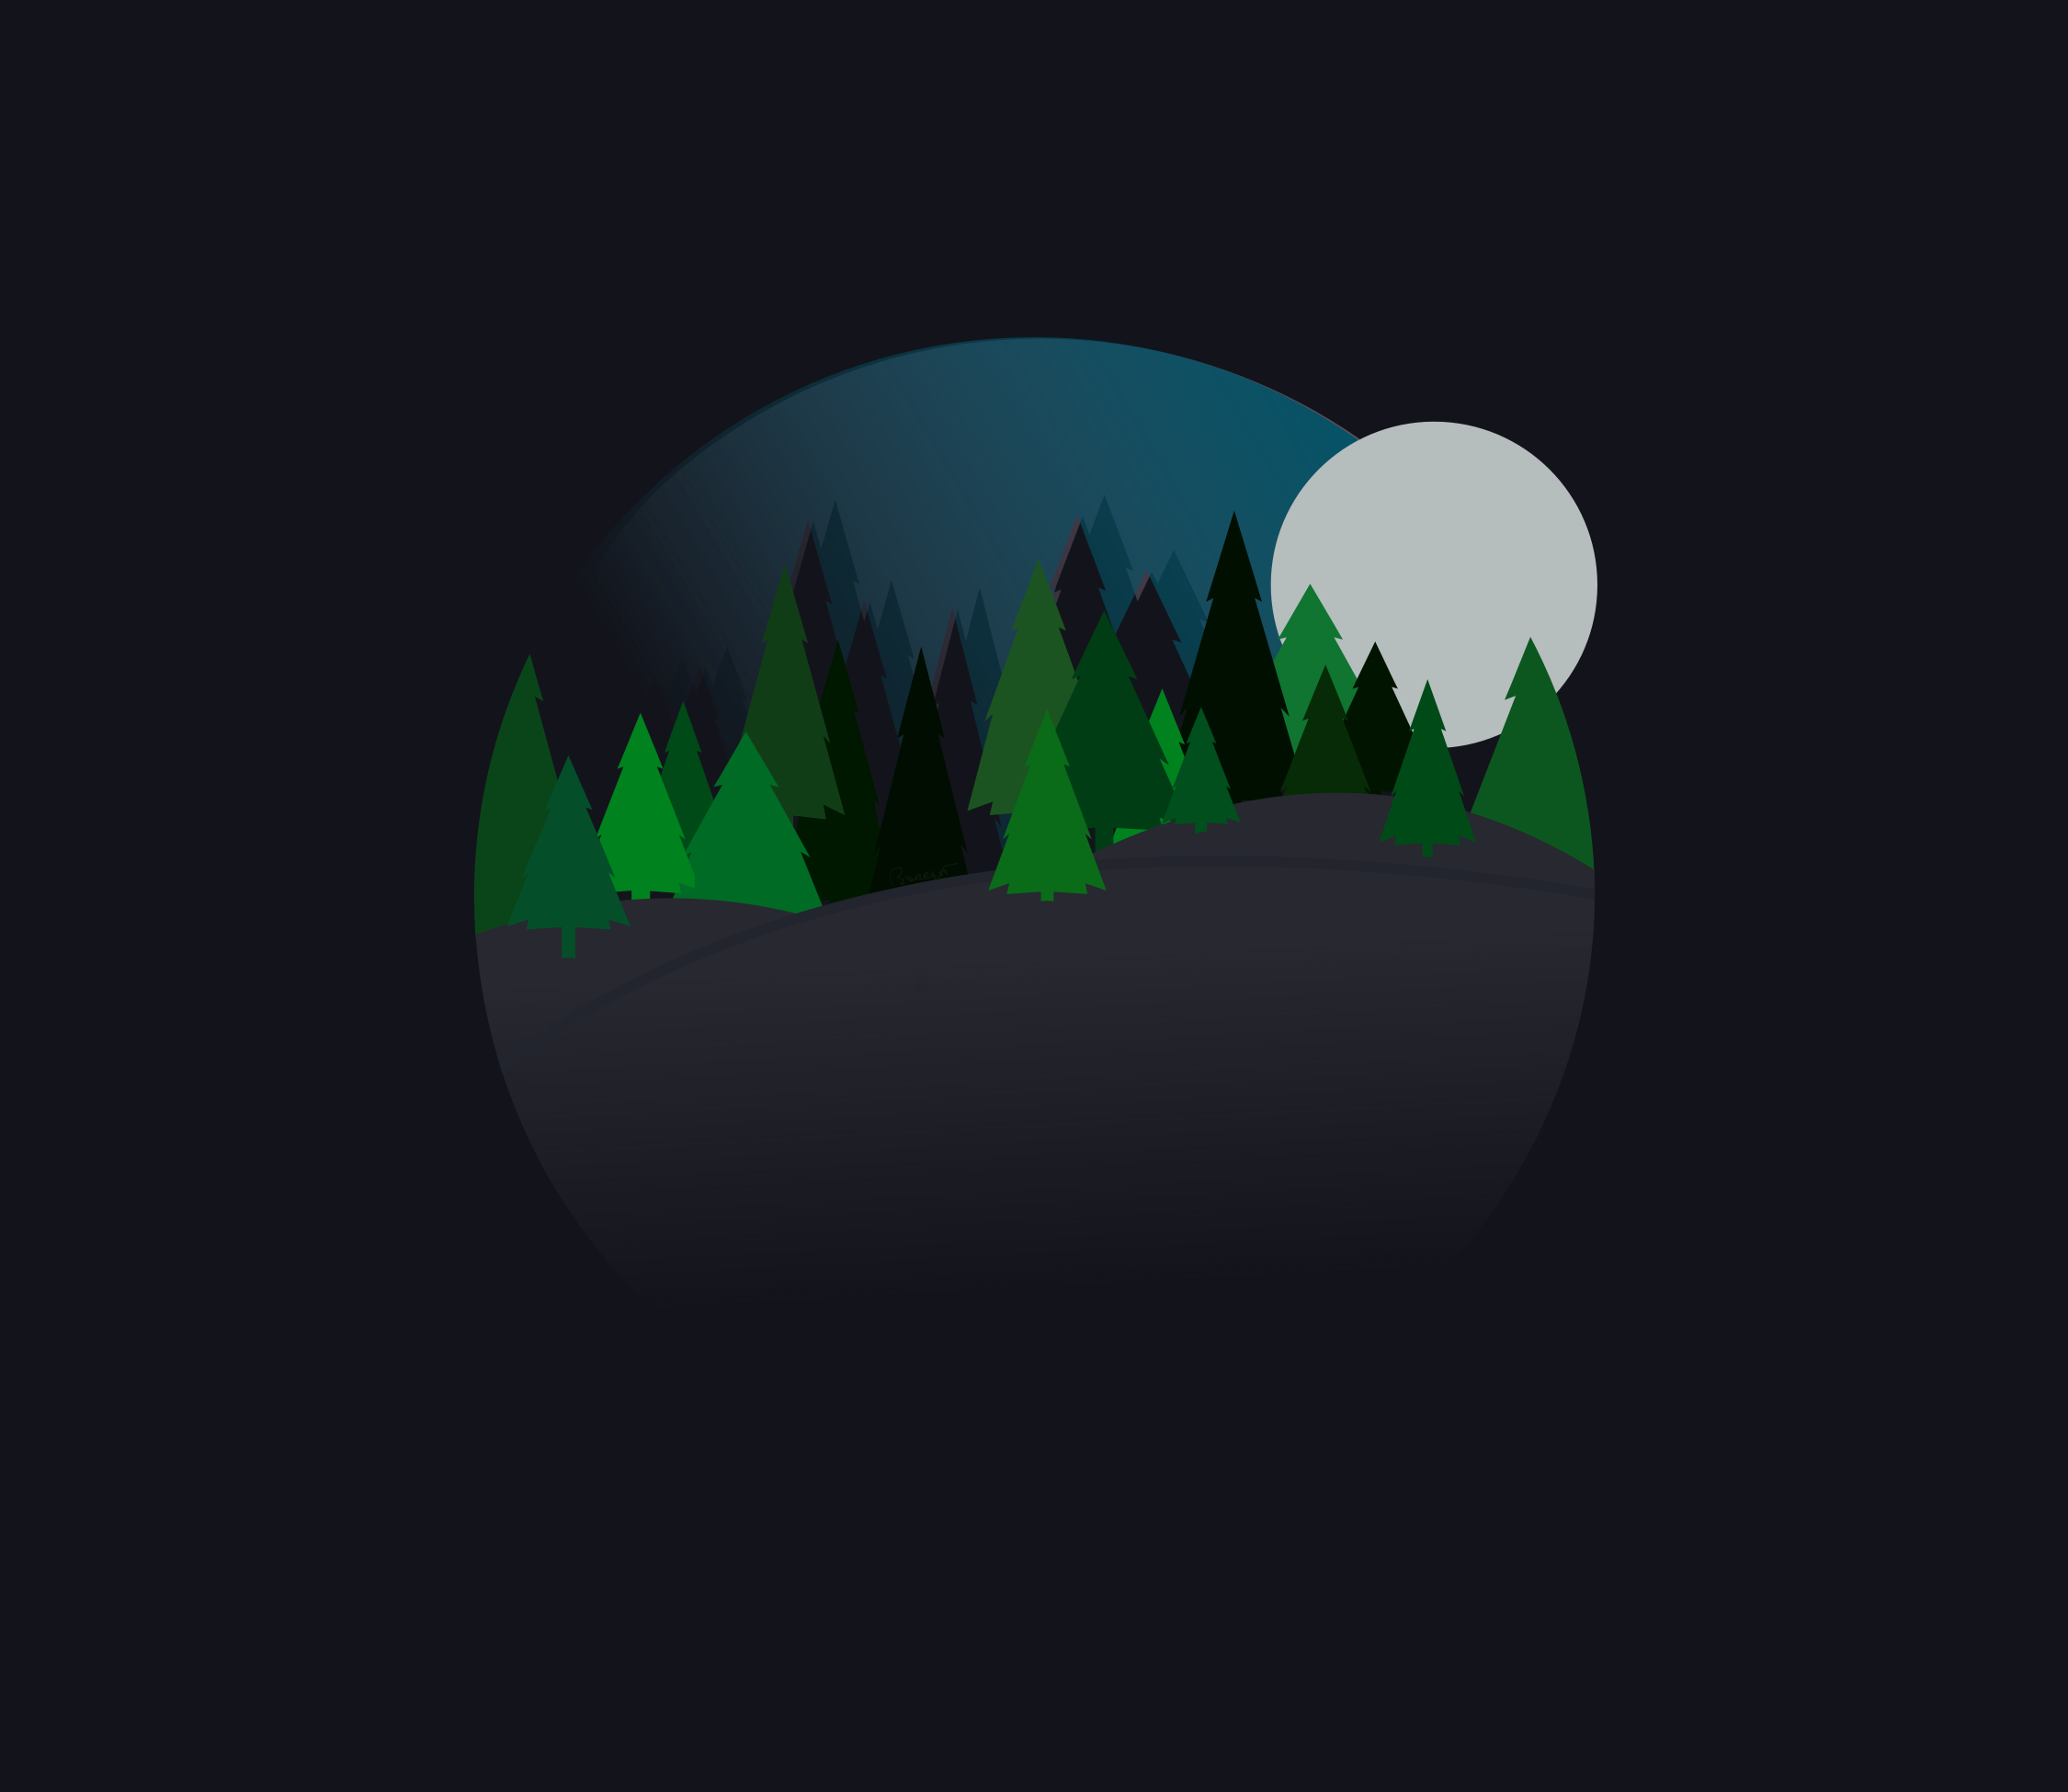 Clipart - A Nighttime Forest Scene with Trees that is Round